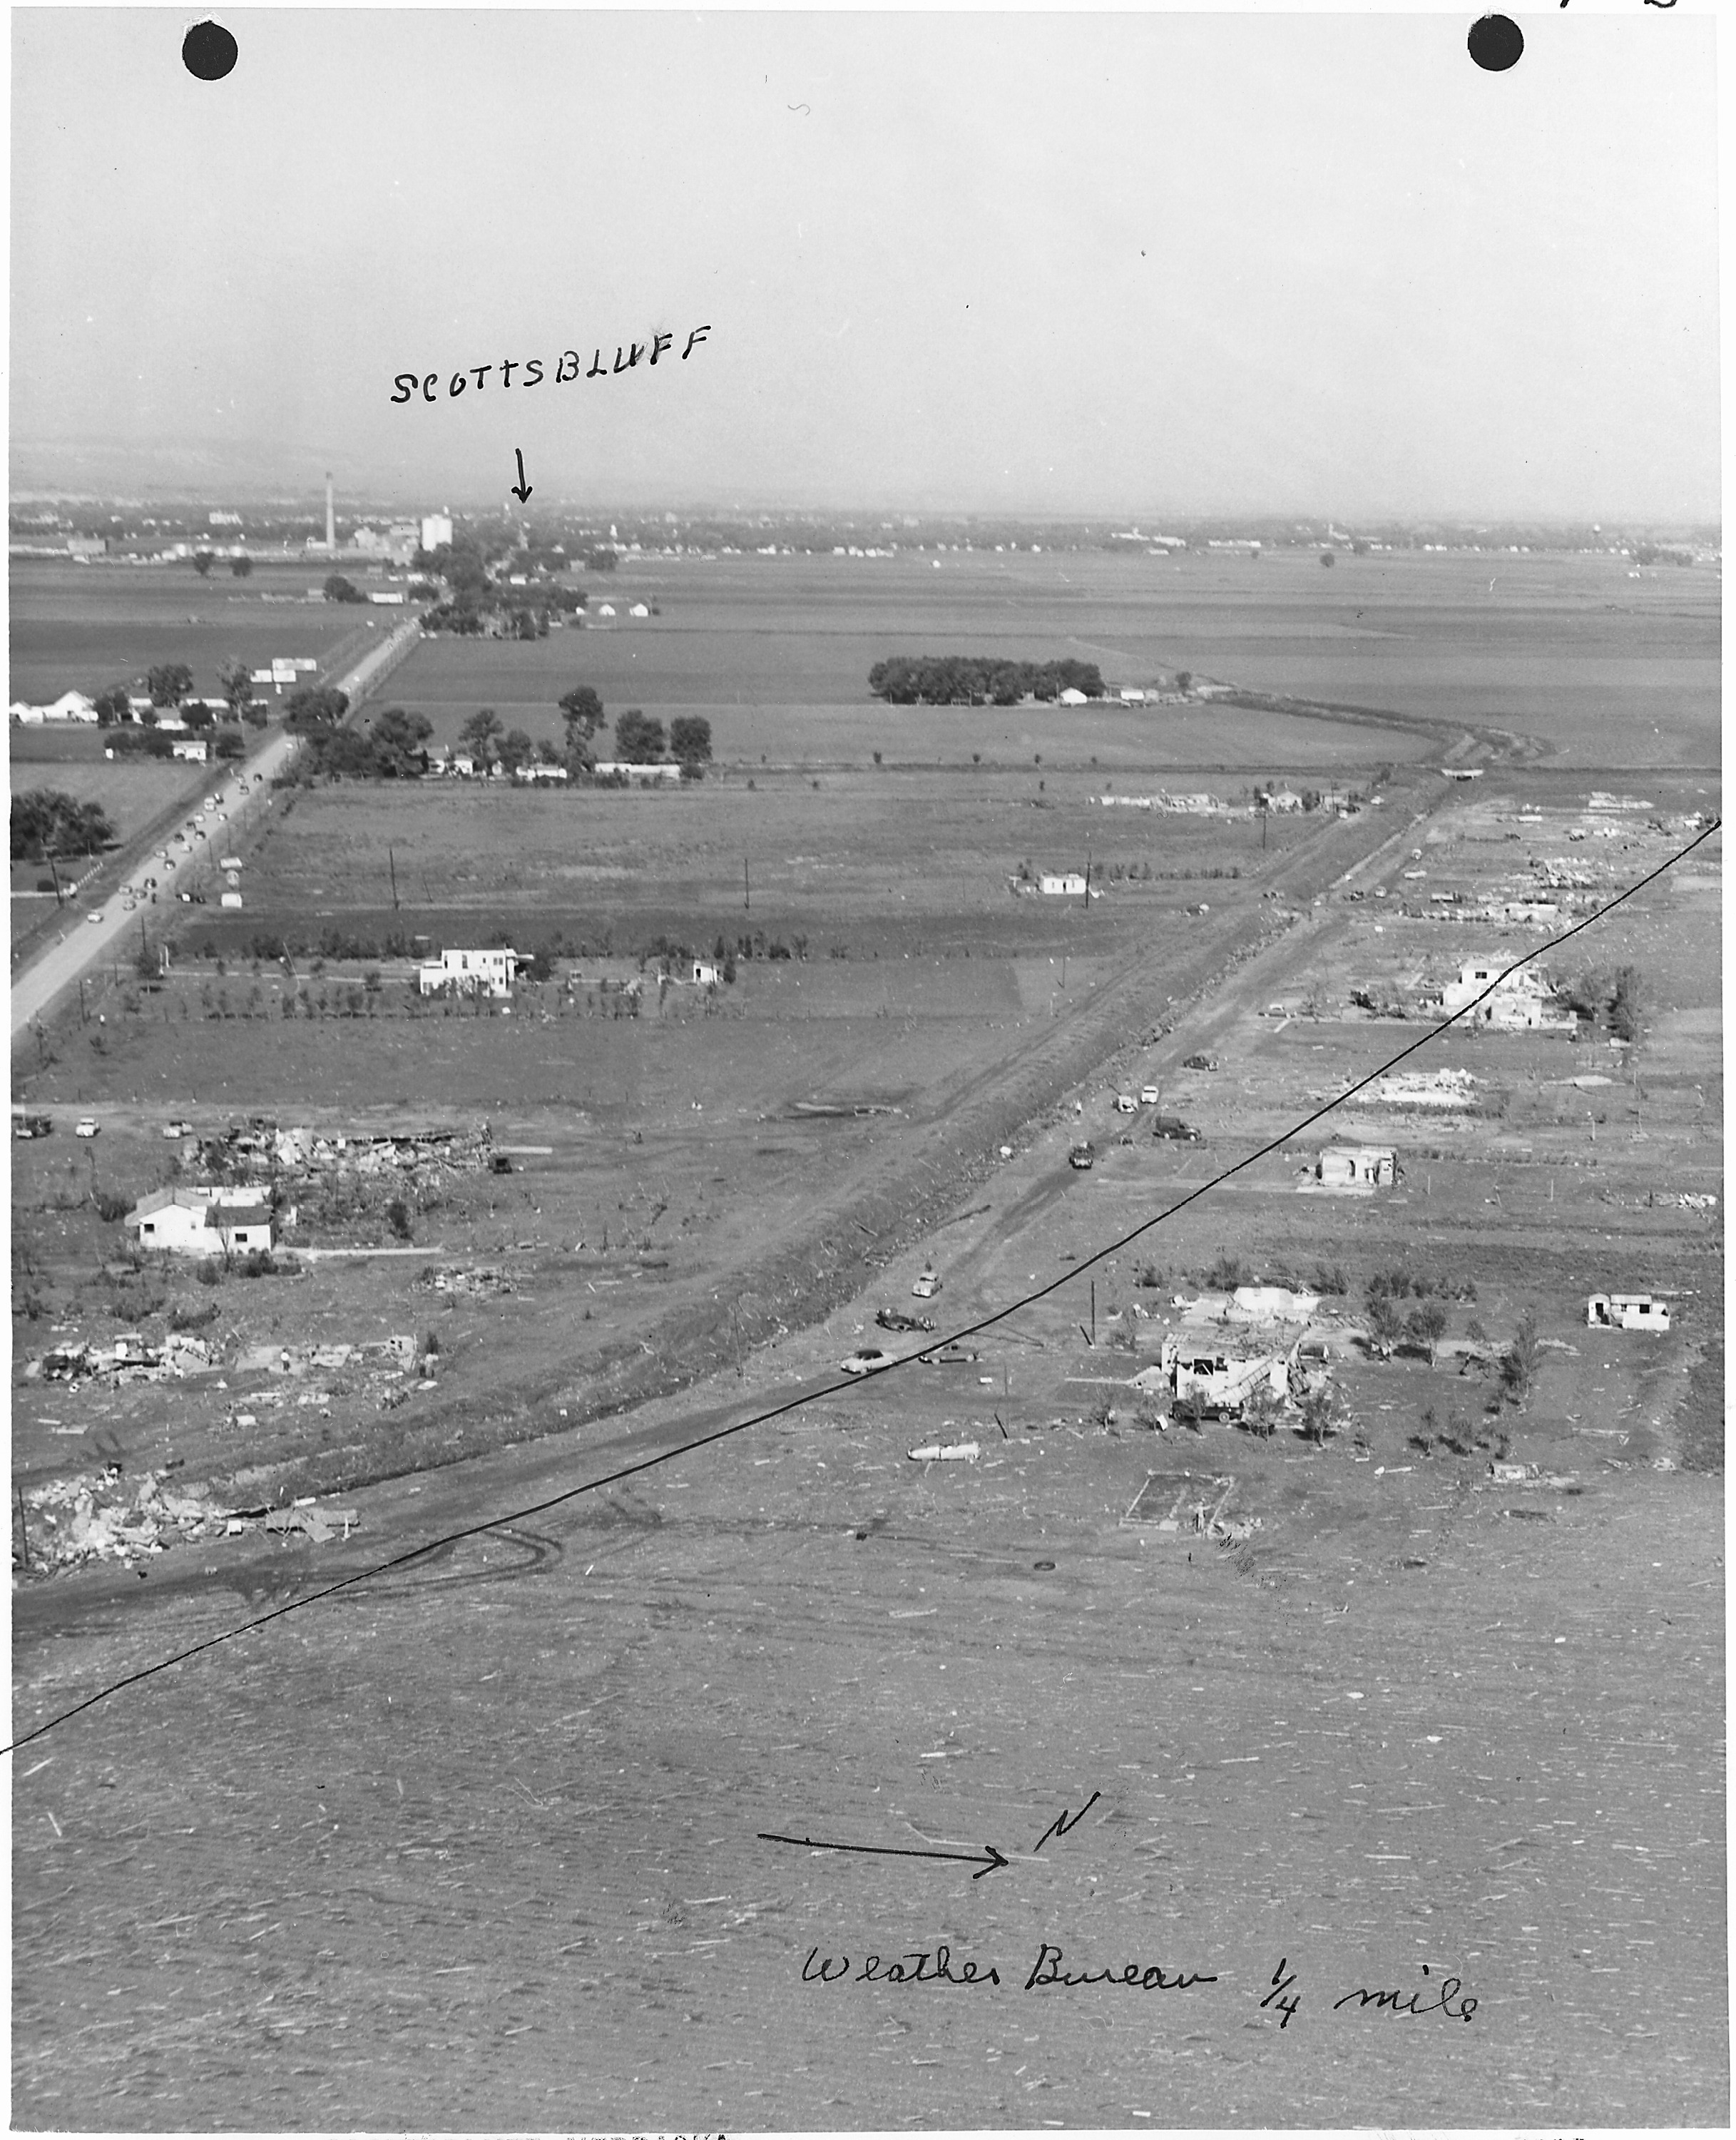 filetornado damage scottsbluff nebraska nara 283879